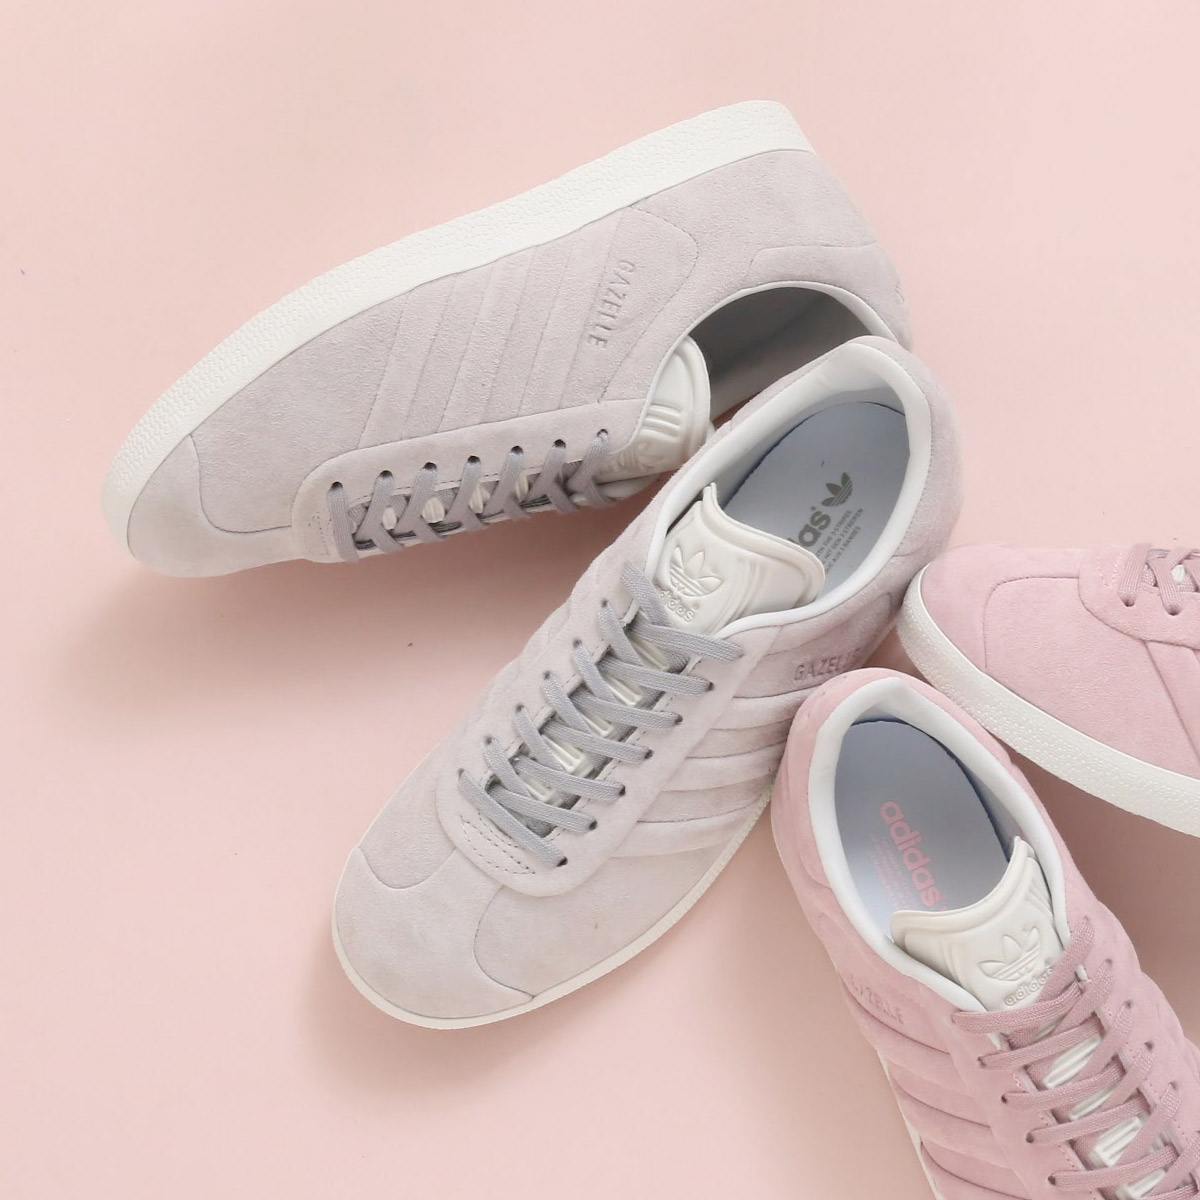 23449af6cf44f adidas Originals GAZELLE STITCH AND TURN W (Adidas originals gazelle stitch  and turn W) (gray TWO F17  gray TWO F17  running white) 18SS-I